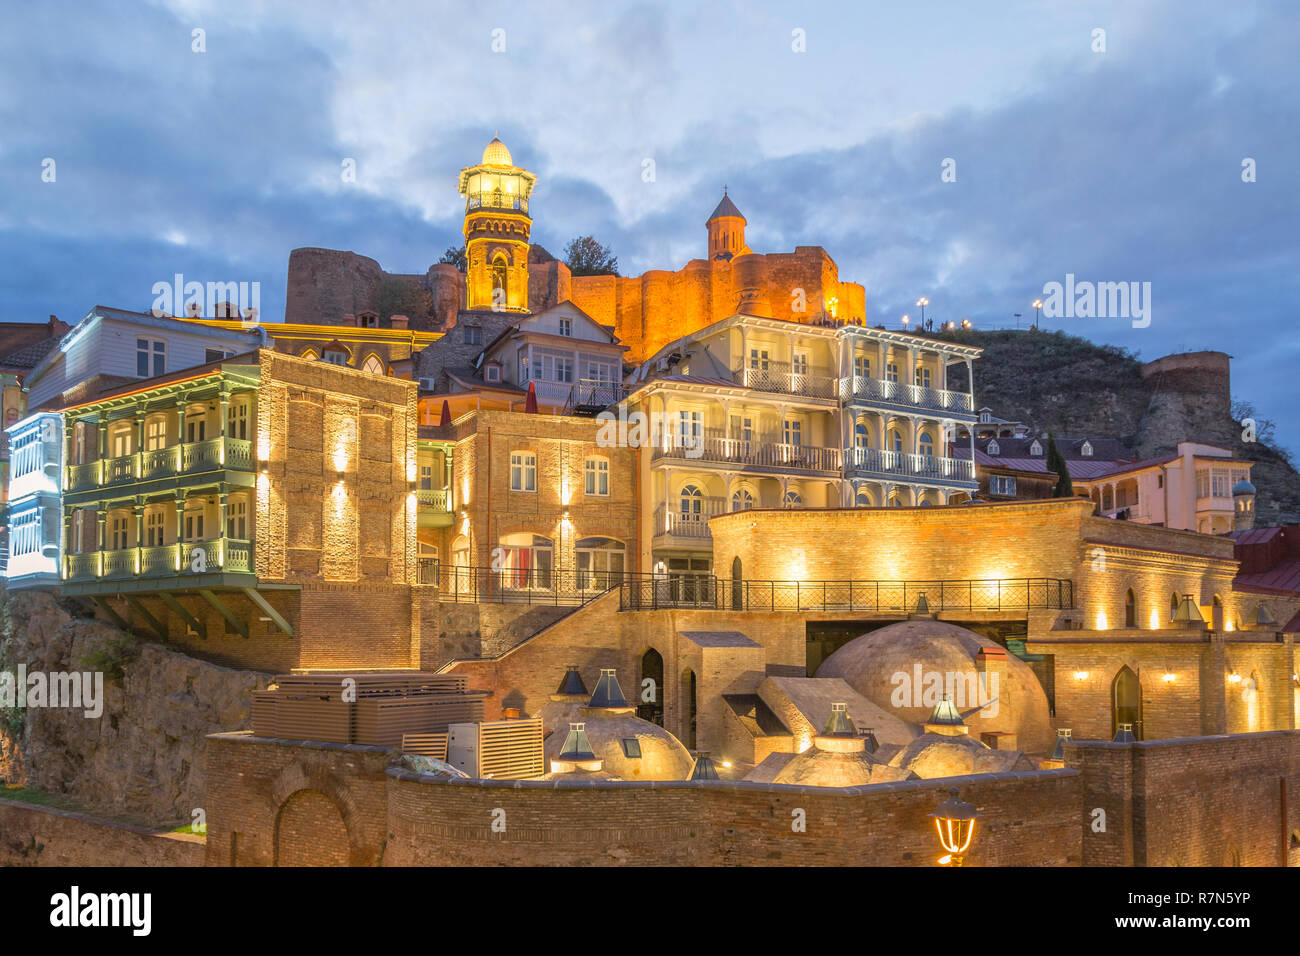 Evening view of Sulphur baths of old town district of Tbilisi, Georgia - Stock Image